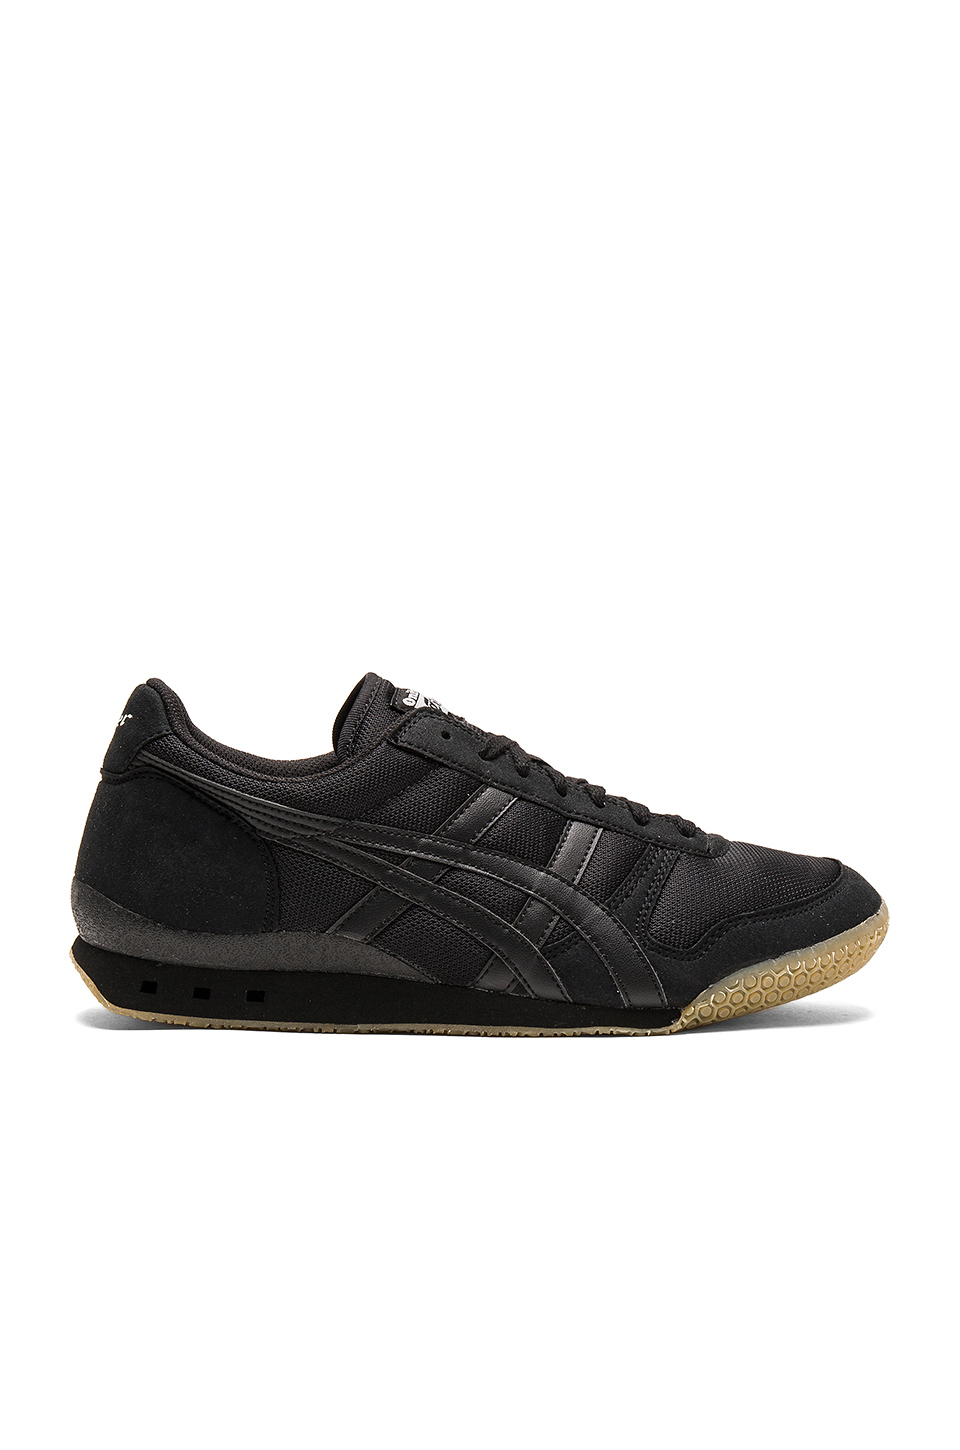 promo code 789d0 63ff9 Ultimate 81, Onitsuka Tiger